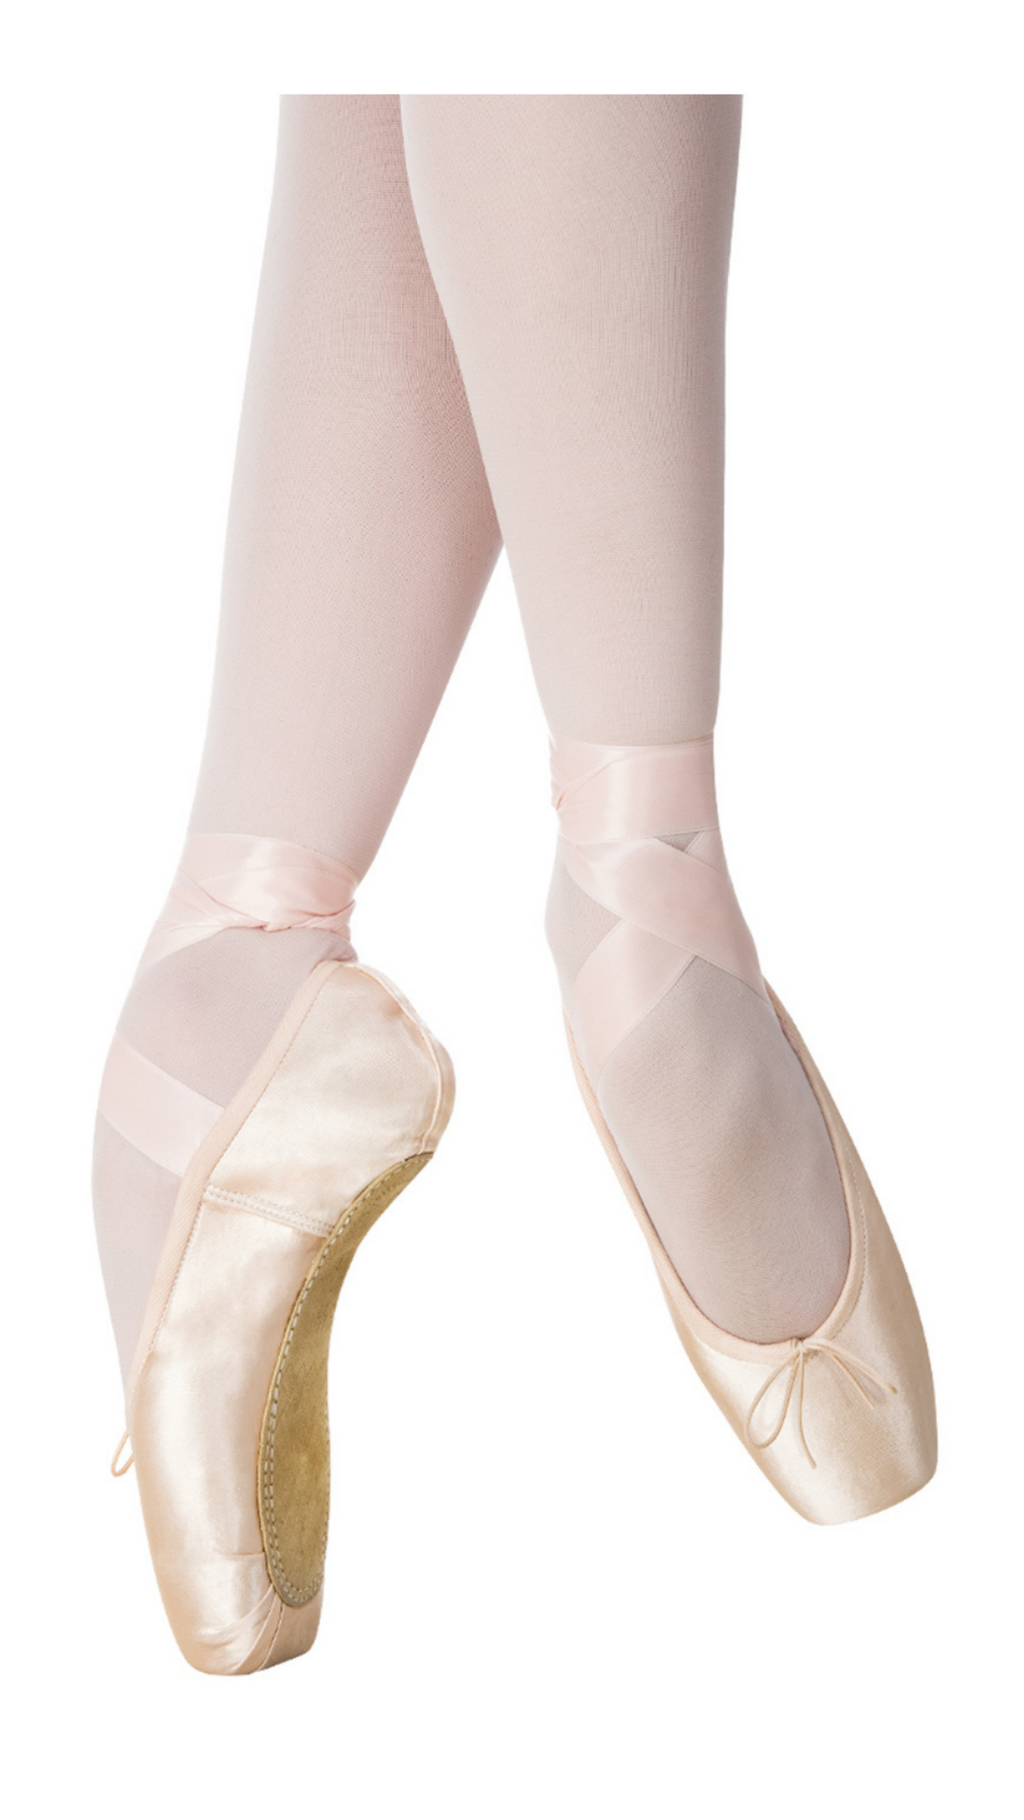 Nova Pointe Shoe - Hard Shank (H)